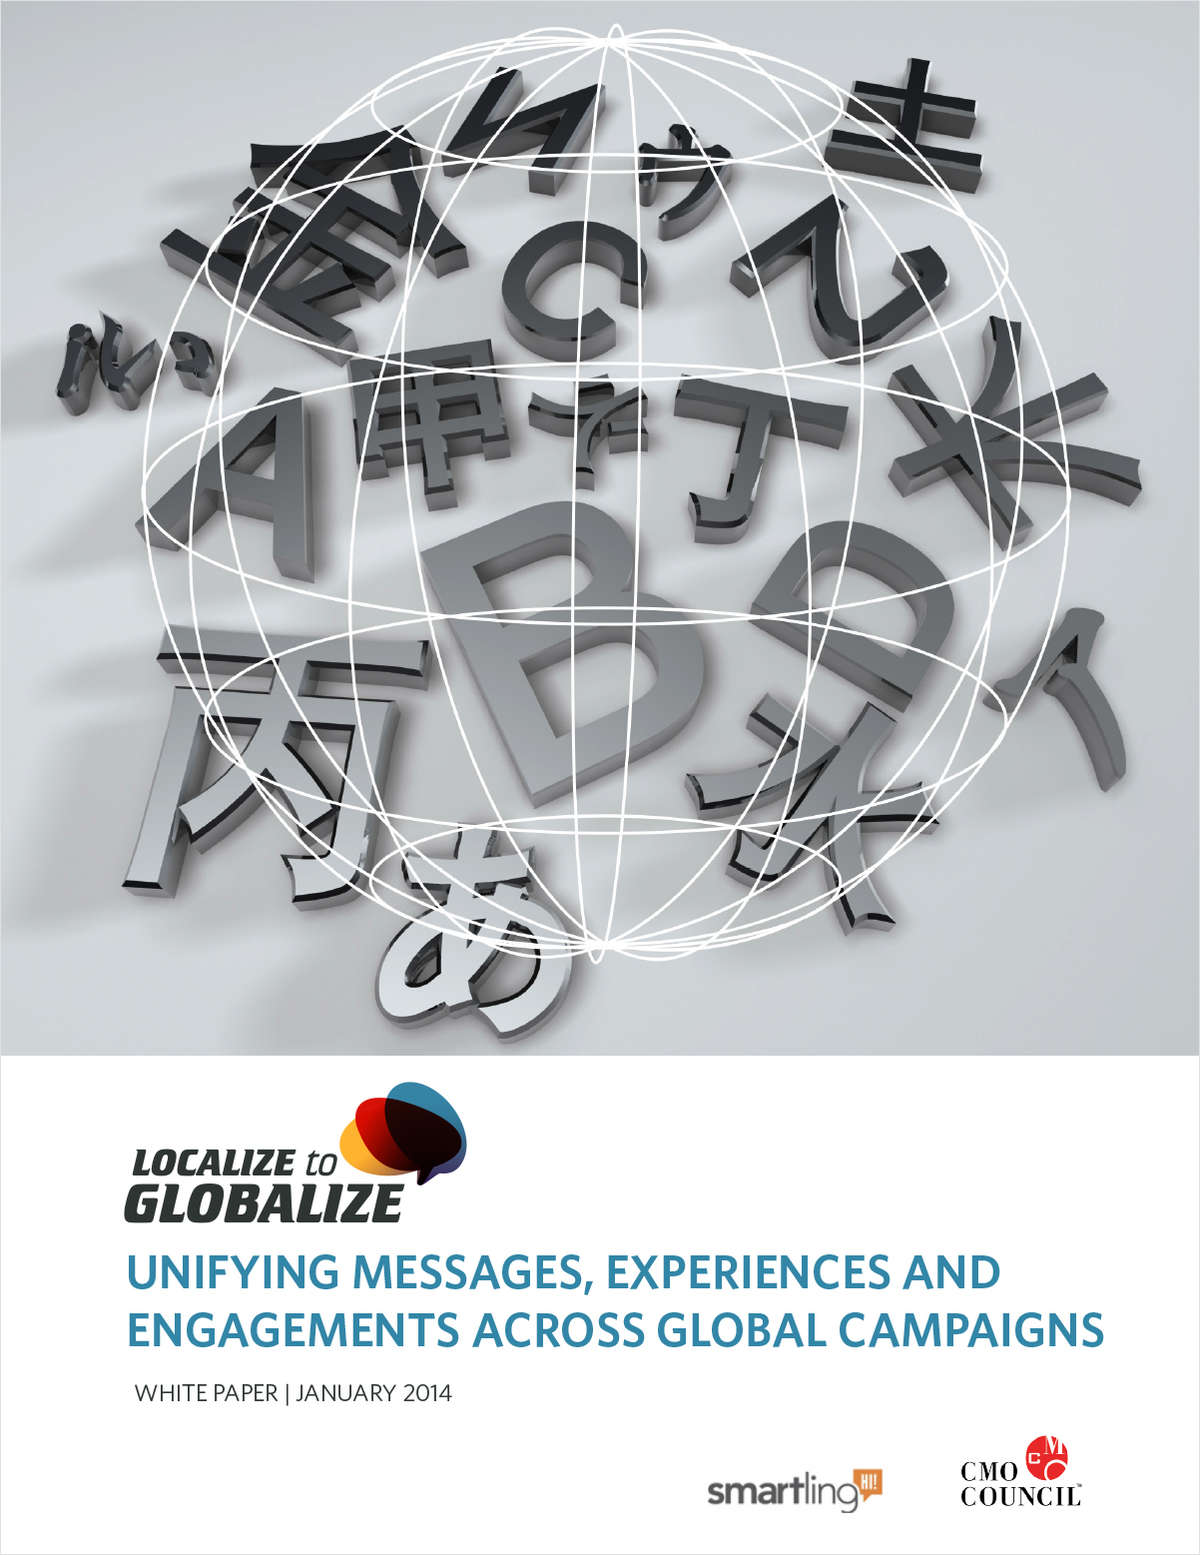 Localize to Globalize: Unifying Messages, Experiences and Engagements Across Global Campaigns